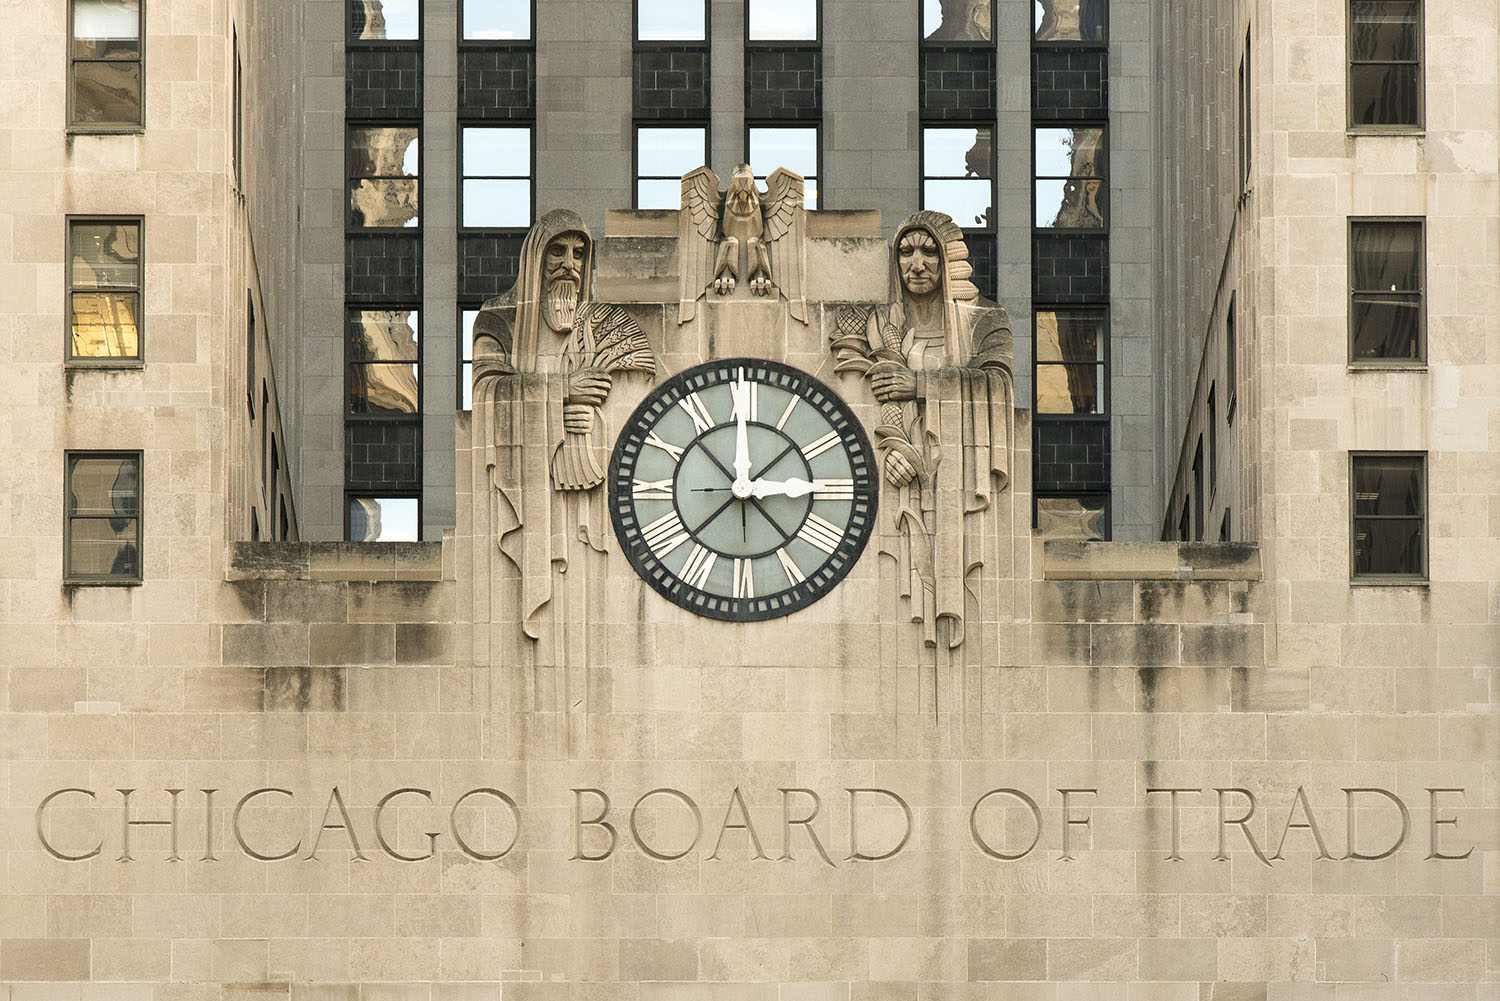 Image Title:  Chicago Board of Trade   Mat Sizes:  8x10, 11x14, 16x20   Float Mount Sizes:  12x18, 16x24, 20x30, 24x36, 28x42, 32x48, 36x54, 40x60.